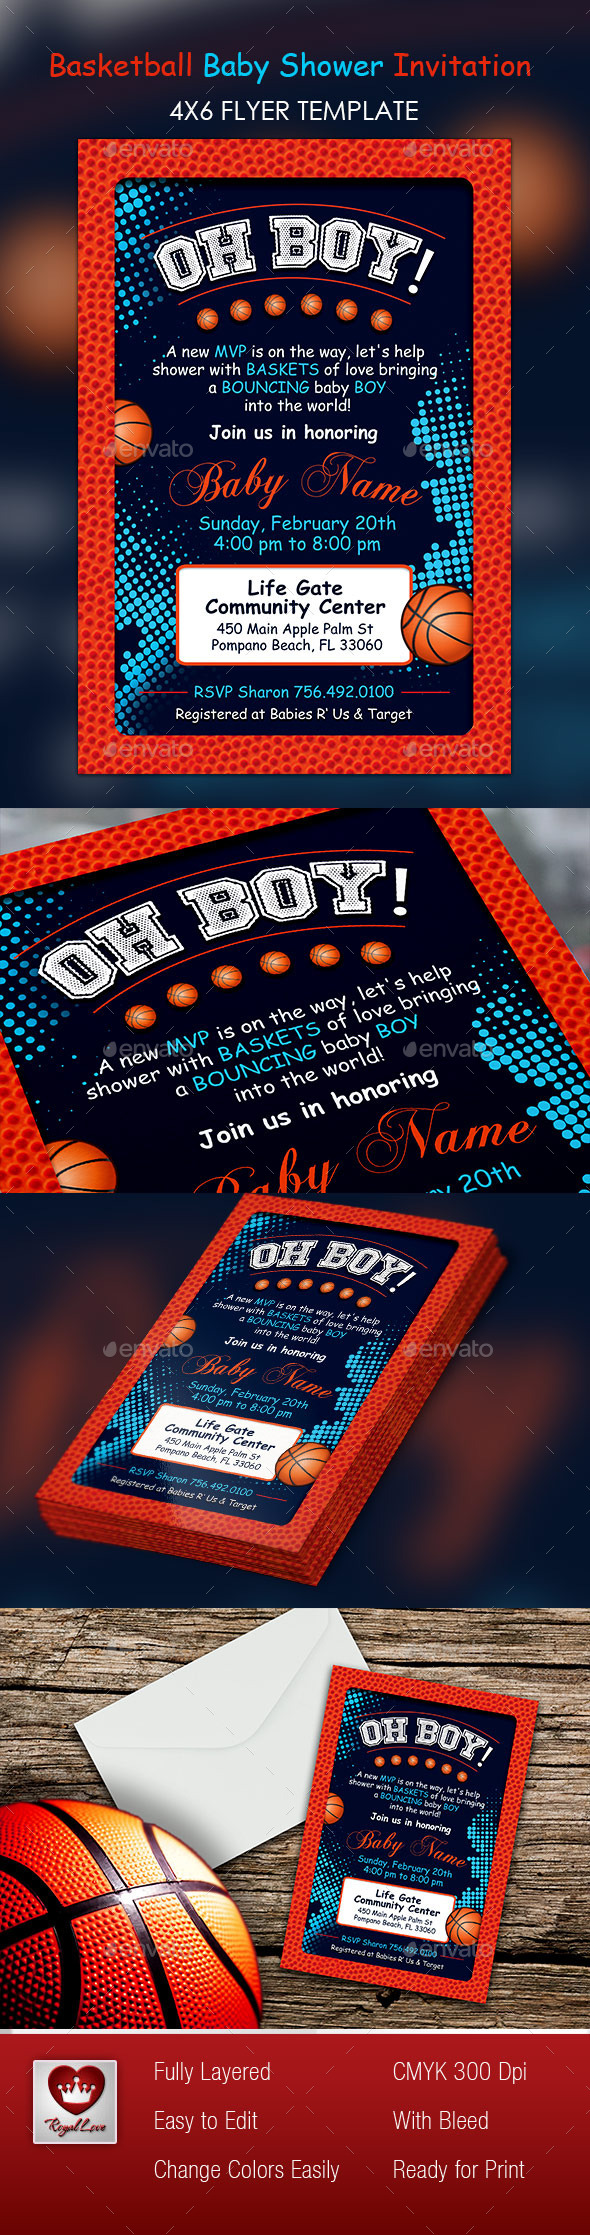 Basketball Baby Shower 4x6 Invitation by royallove | GraphicRiver